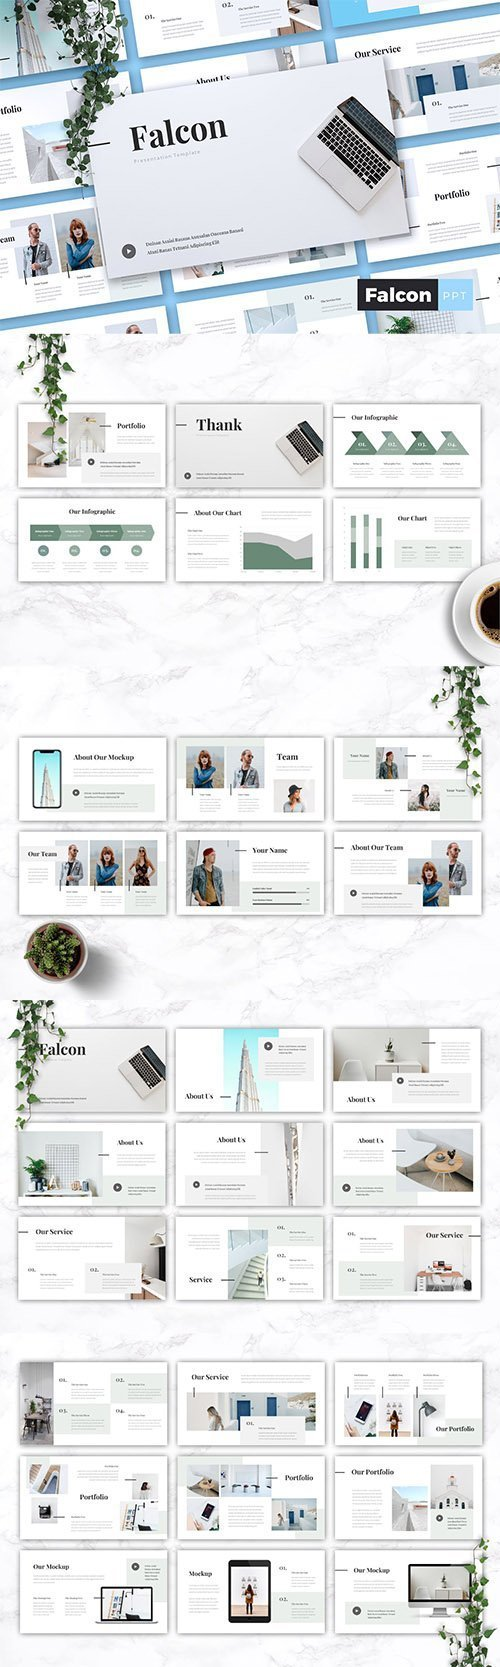 Download FALCON - Company Profile Powerpoint, Keynote and Google